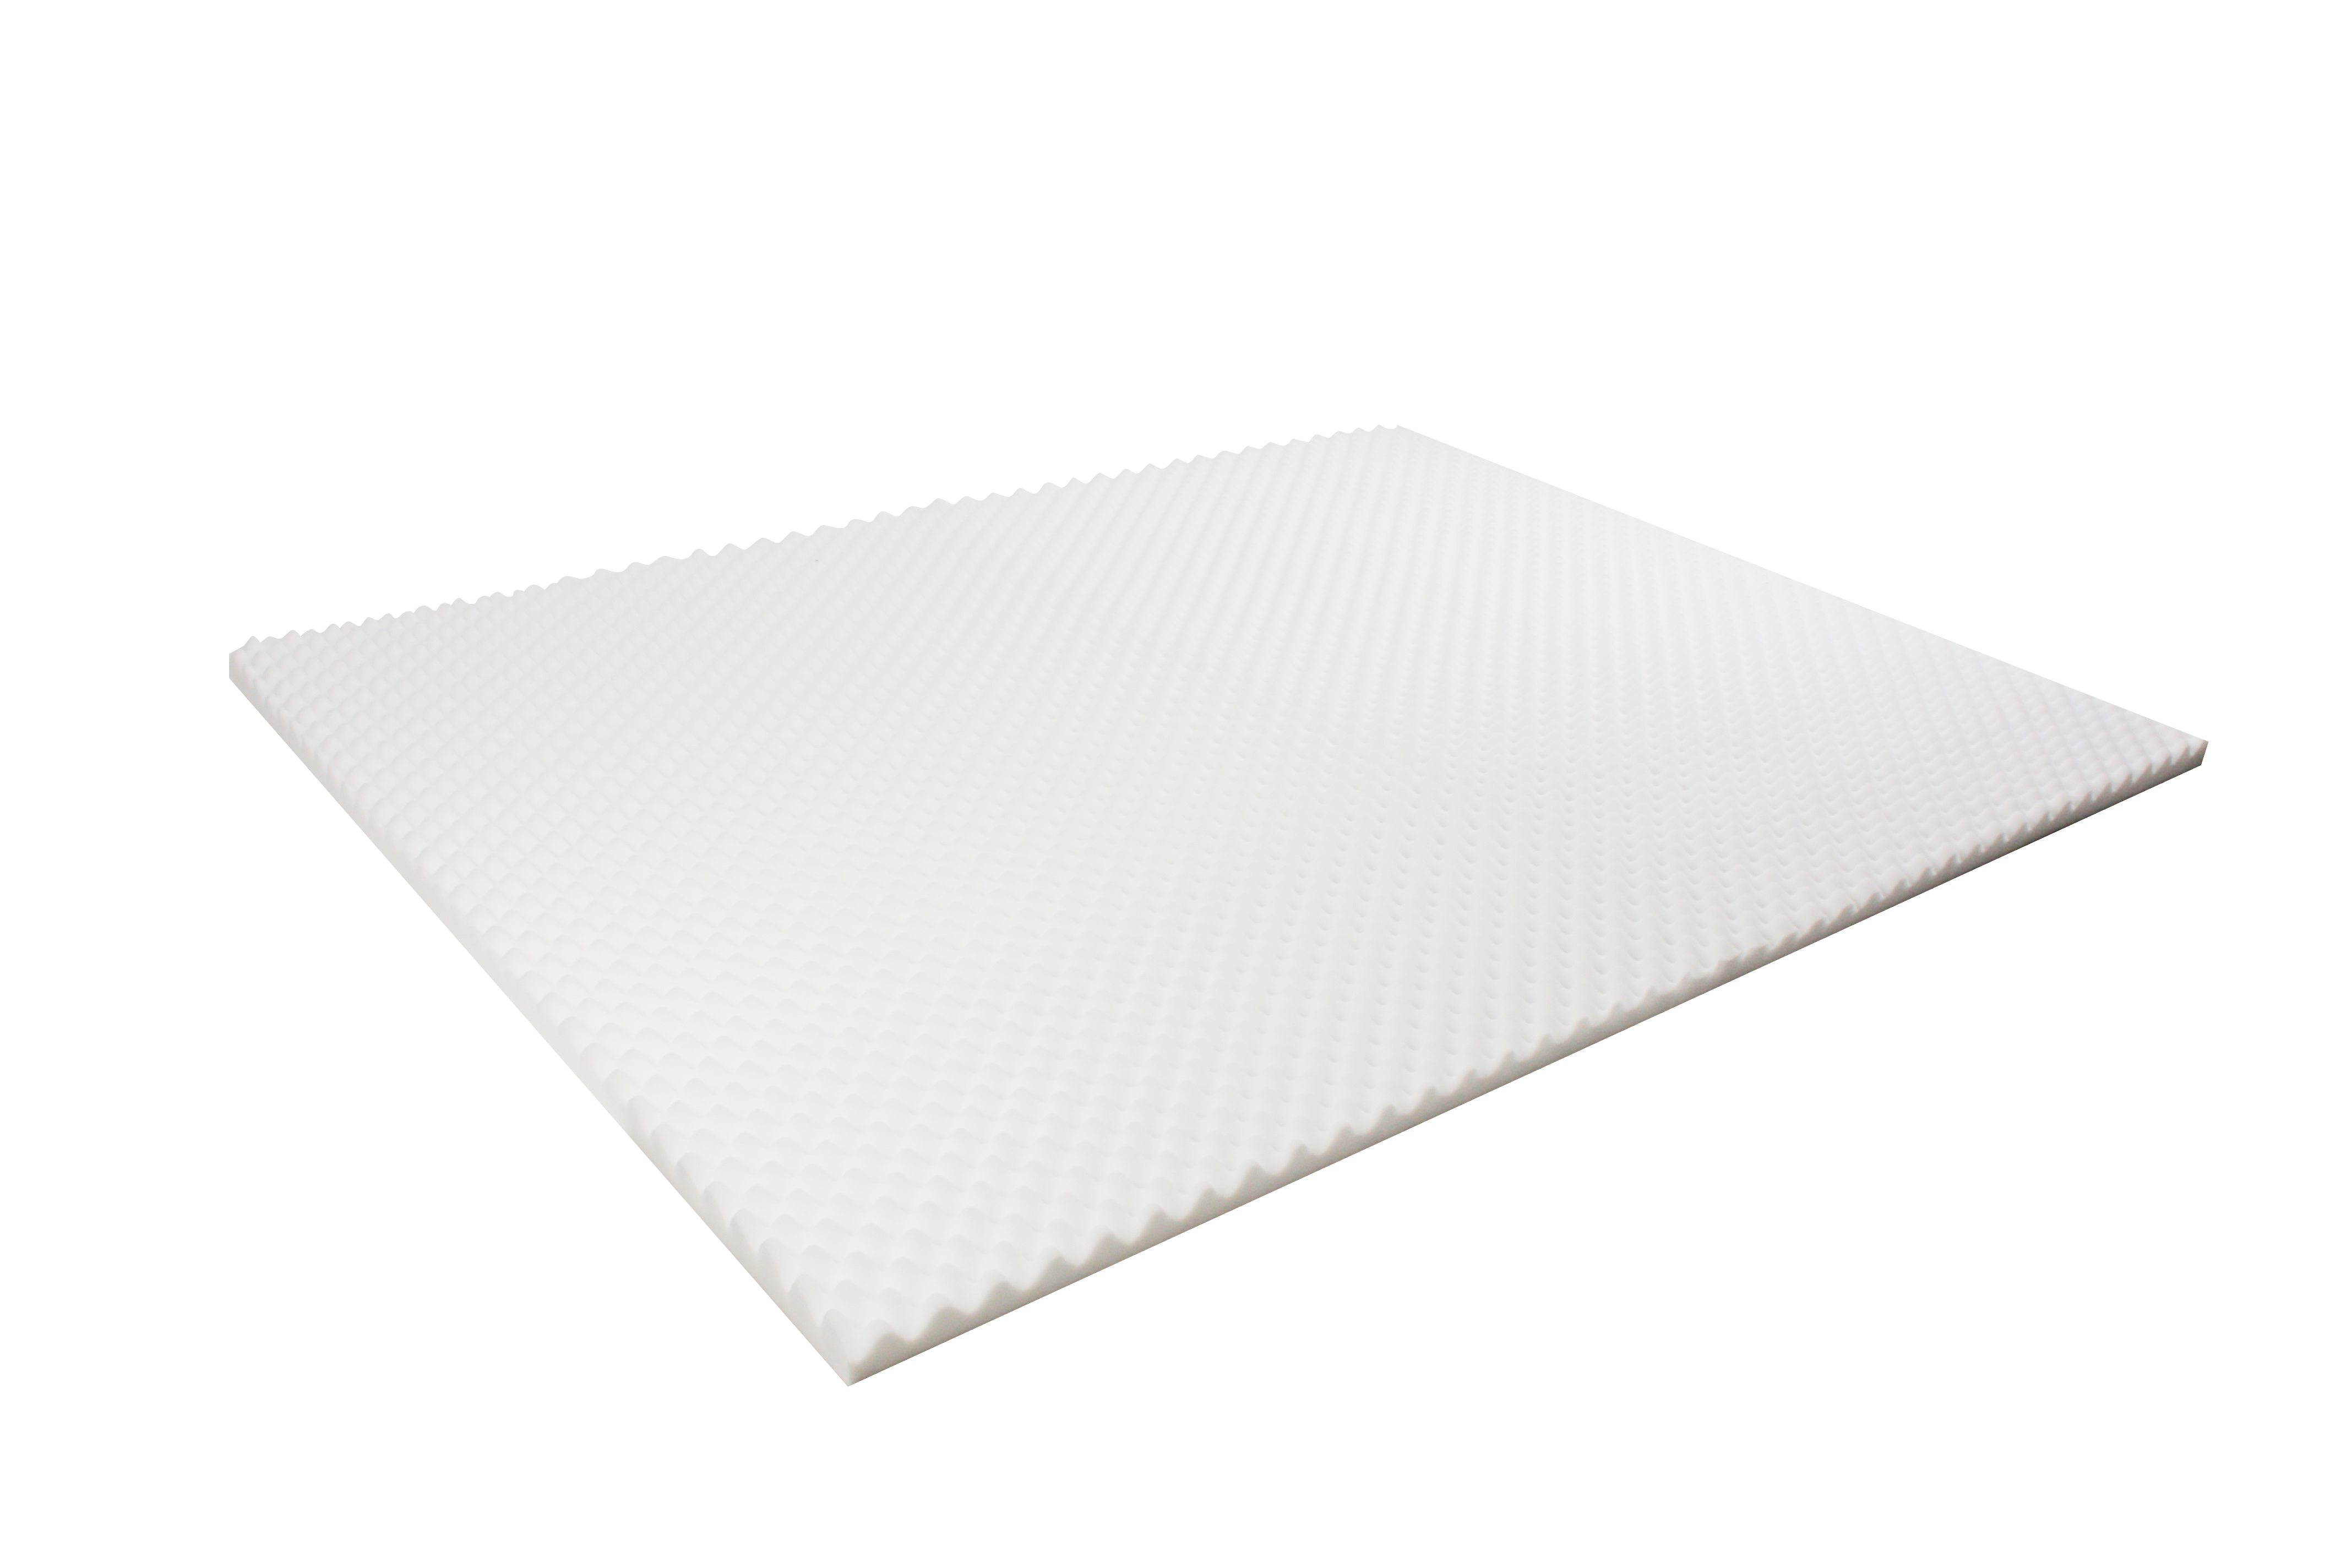 Egg Crate Mattress Topper 5cm Deluxe Underlay Foam Protector Cover All Sizes Ebay